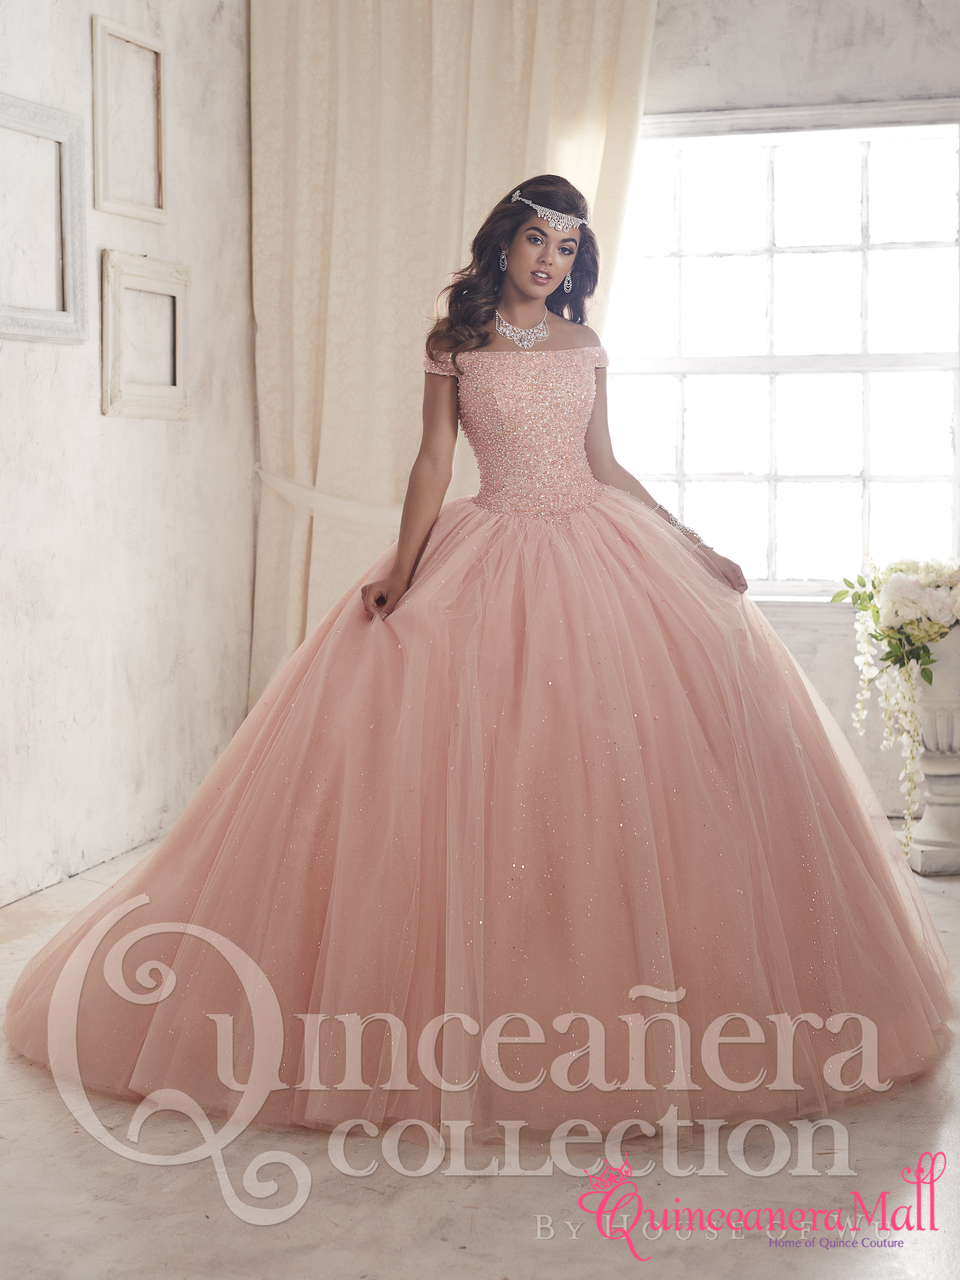 858569f1f69 Quinceanera Dress  26844 - Quinceanera Mall